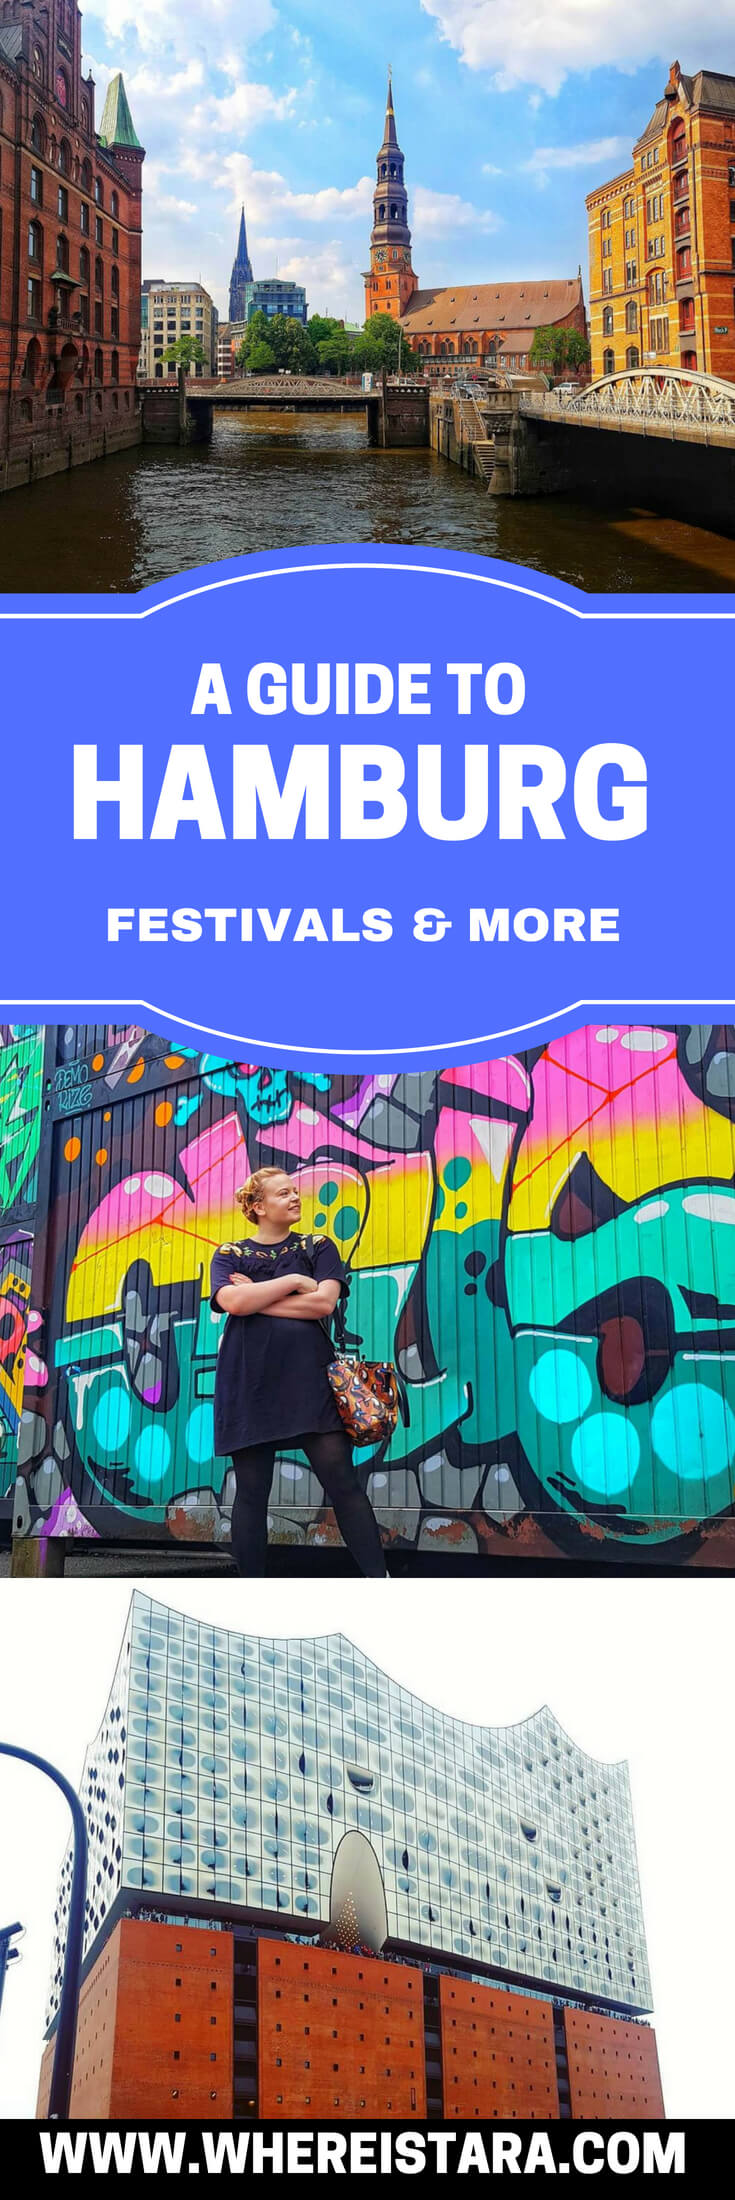 elbjazz festival hamburg festivals things to do Hamburg guide